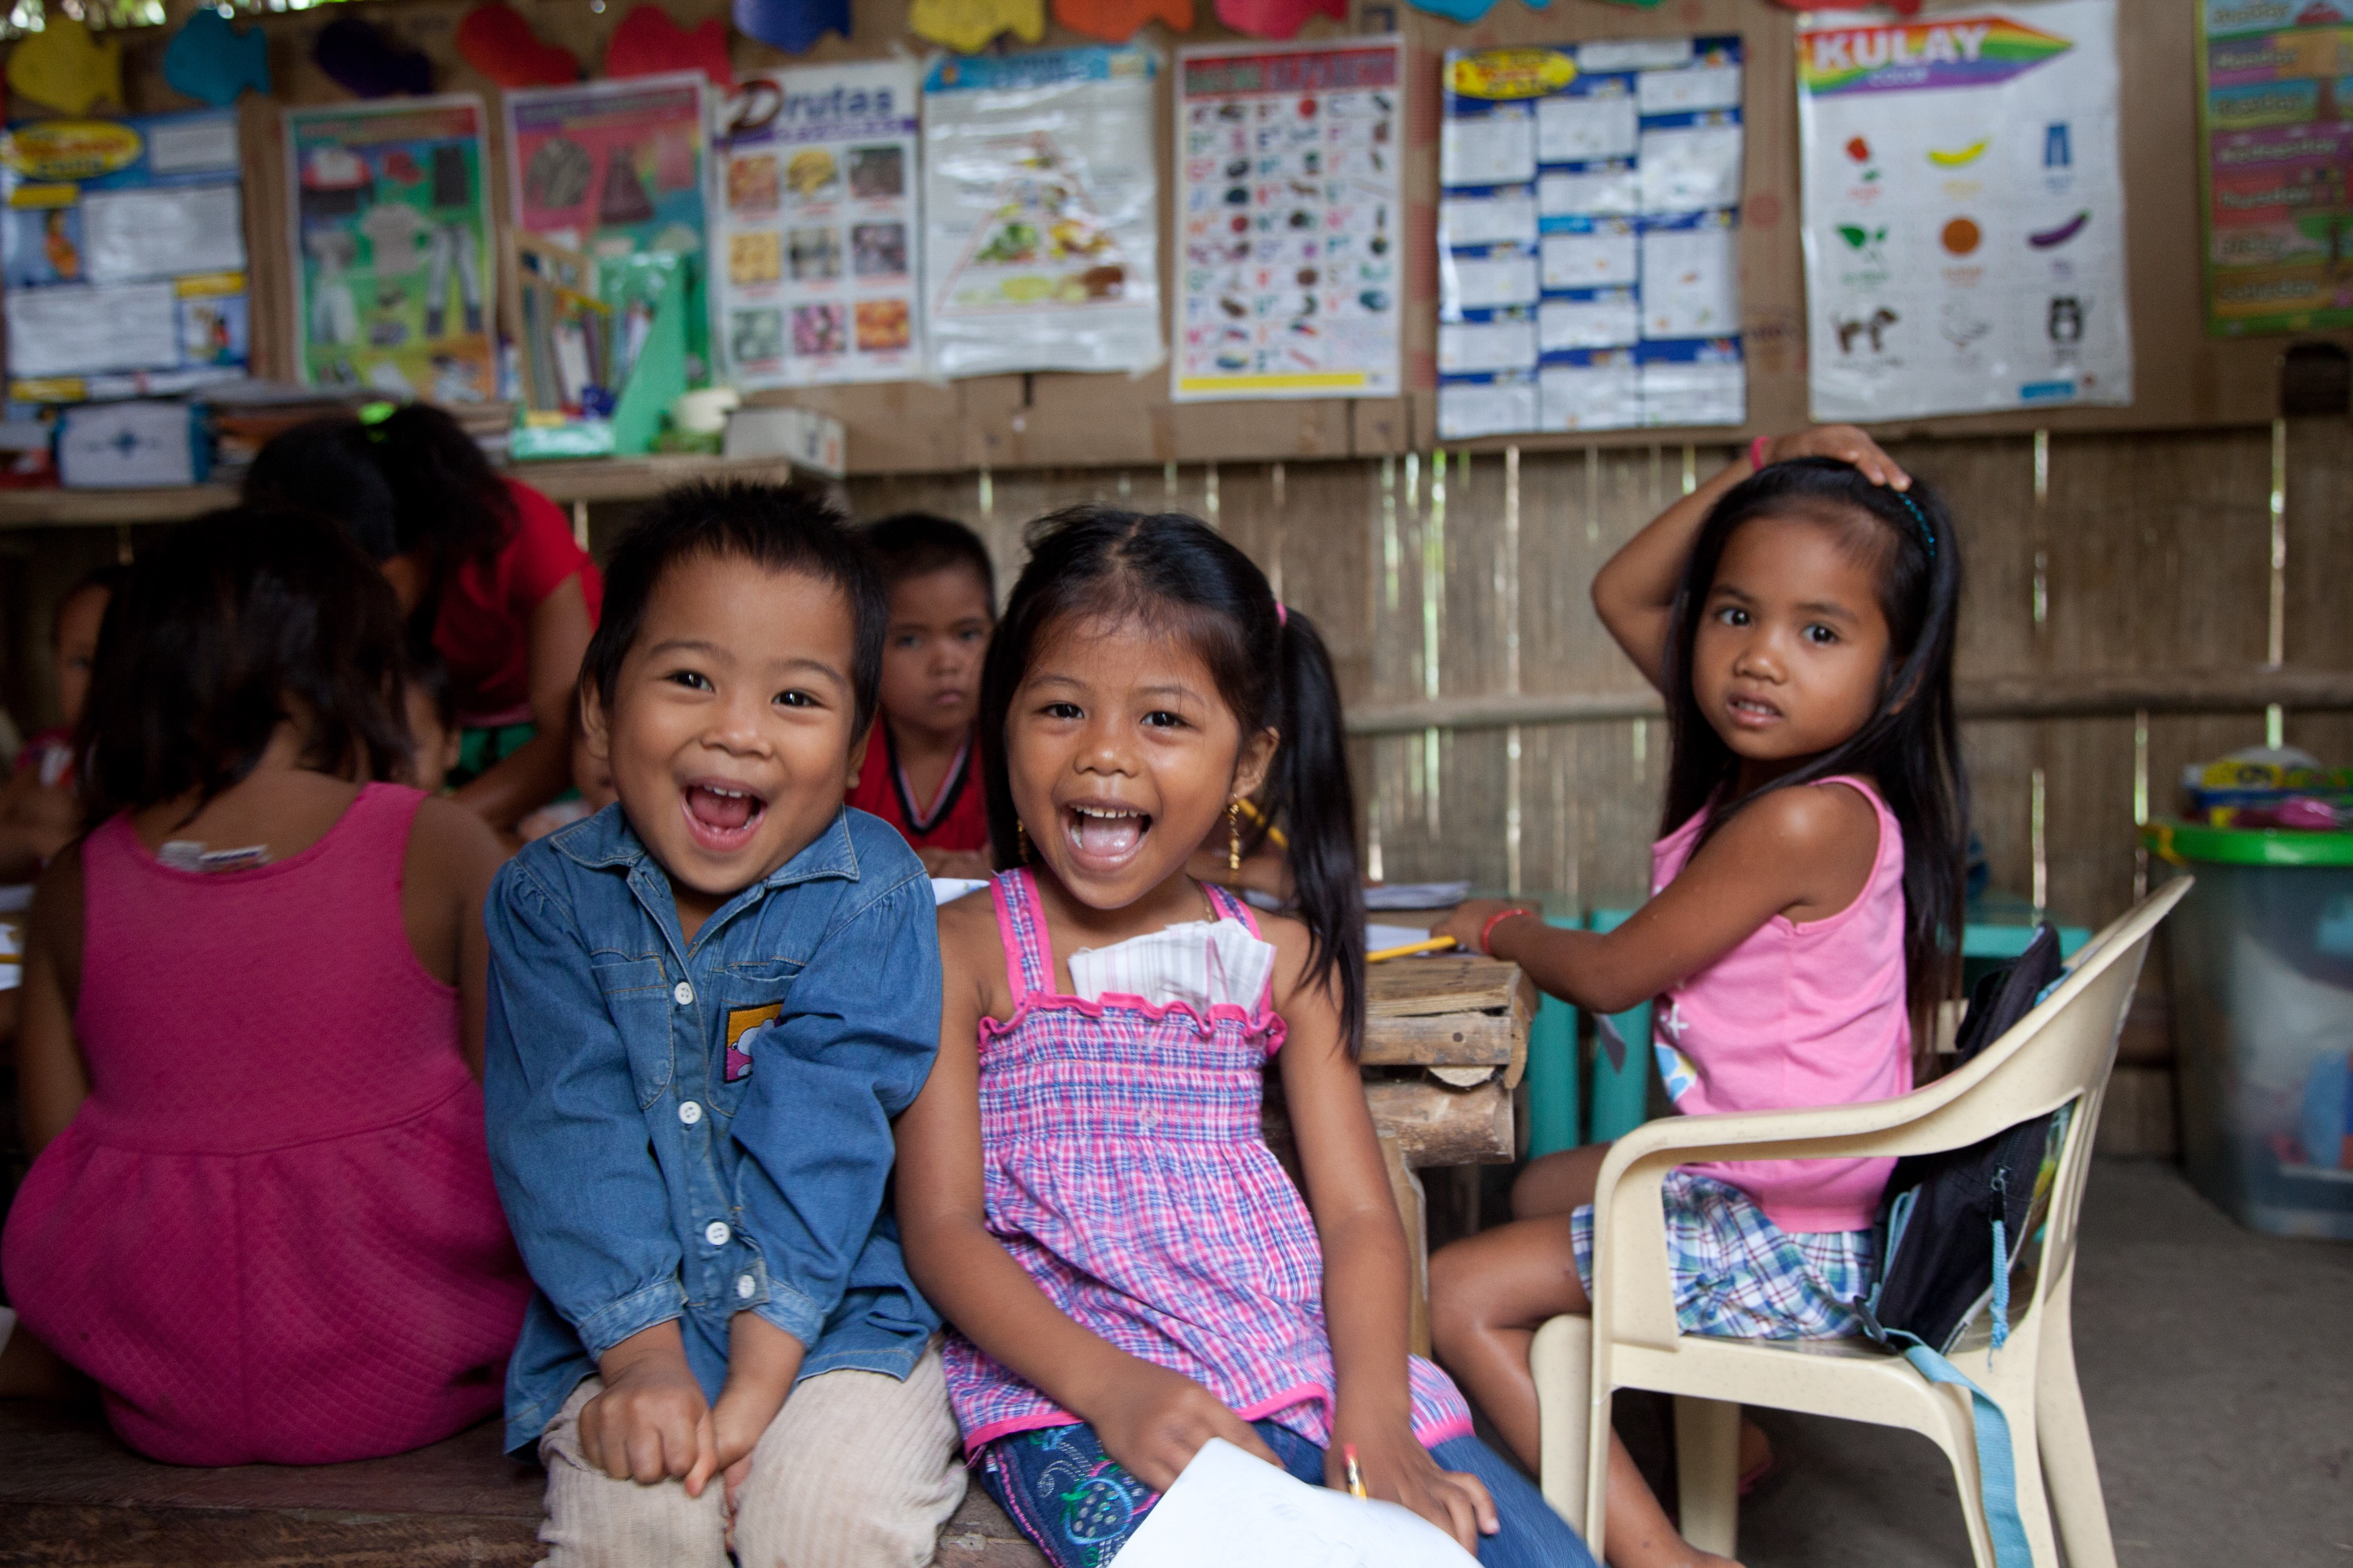 The Benefits Of Preschool For Young Children